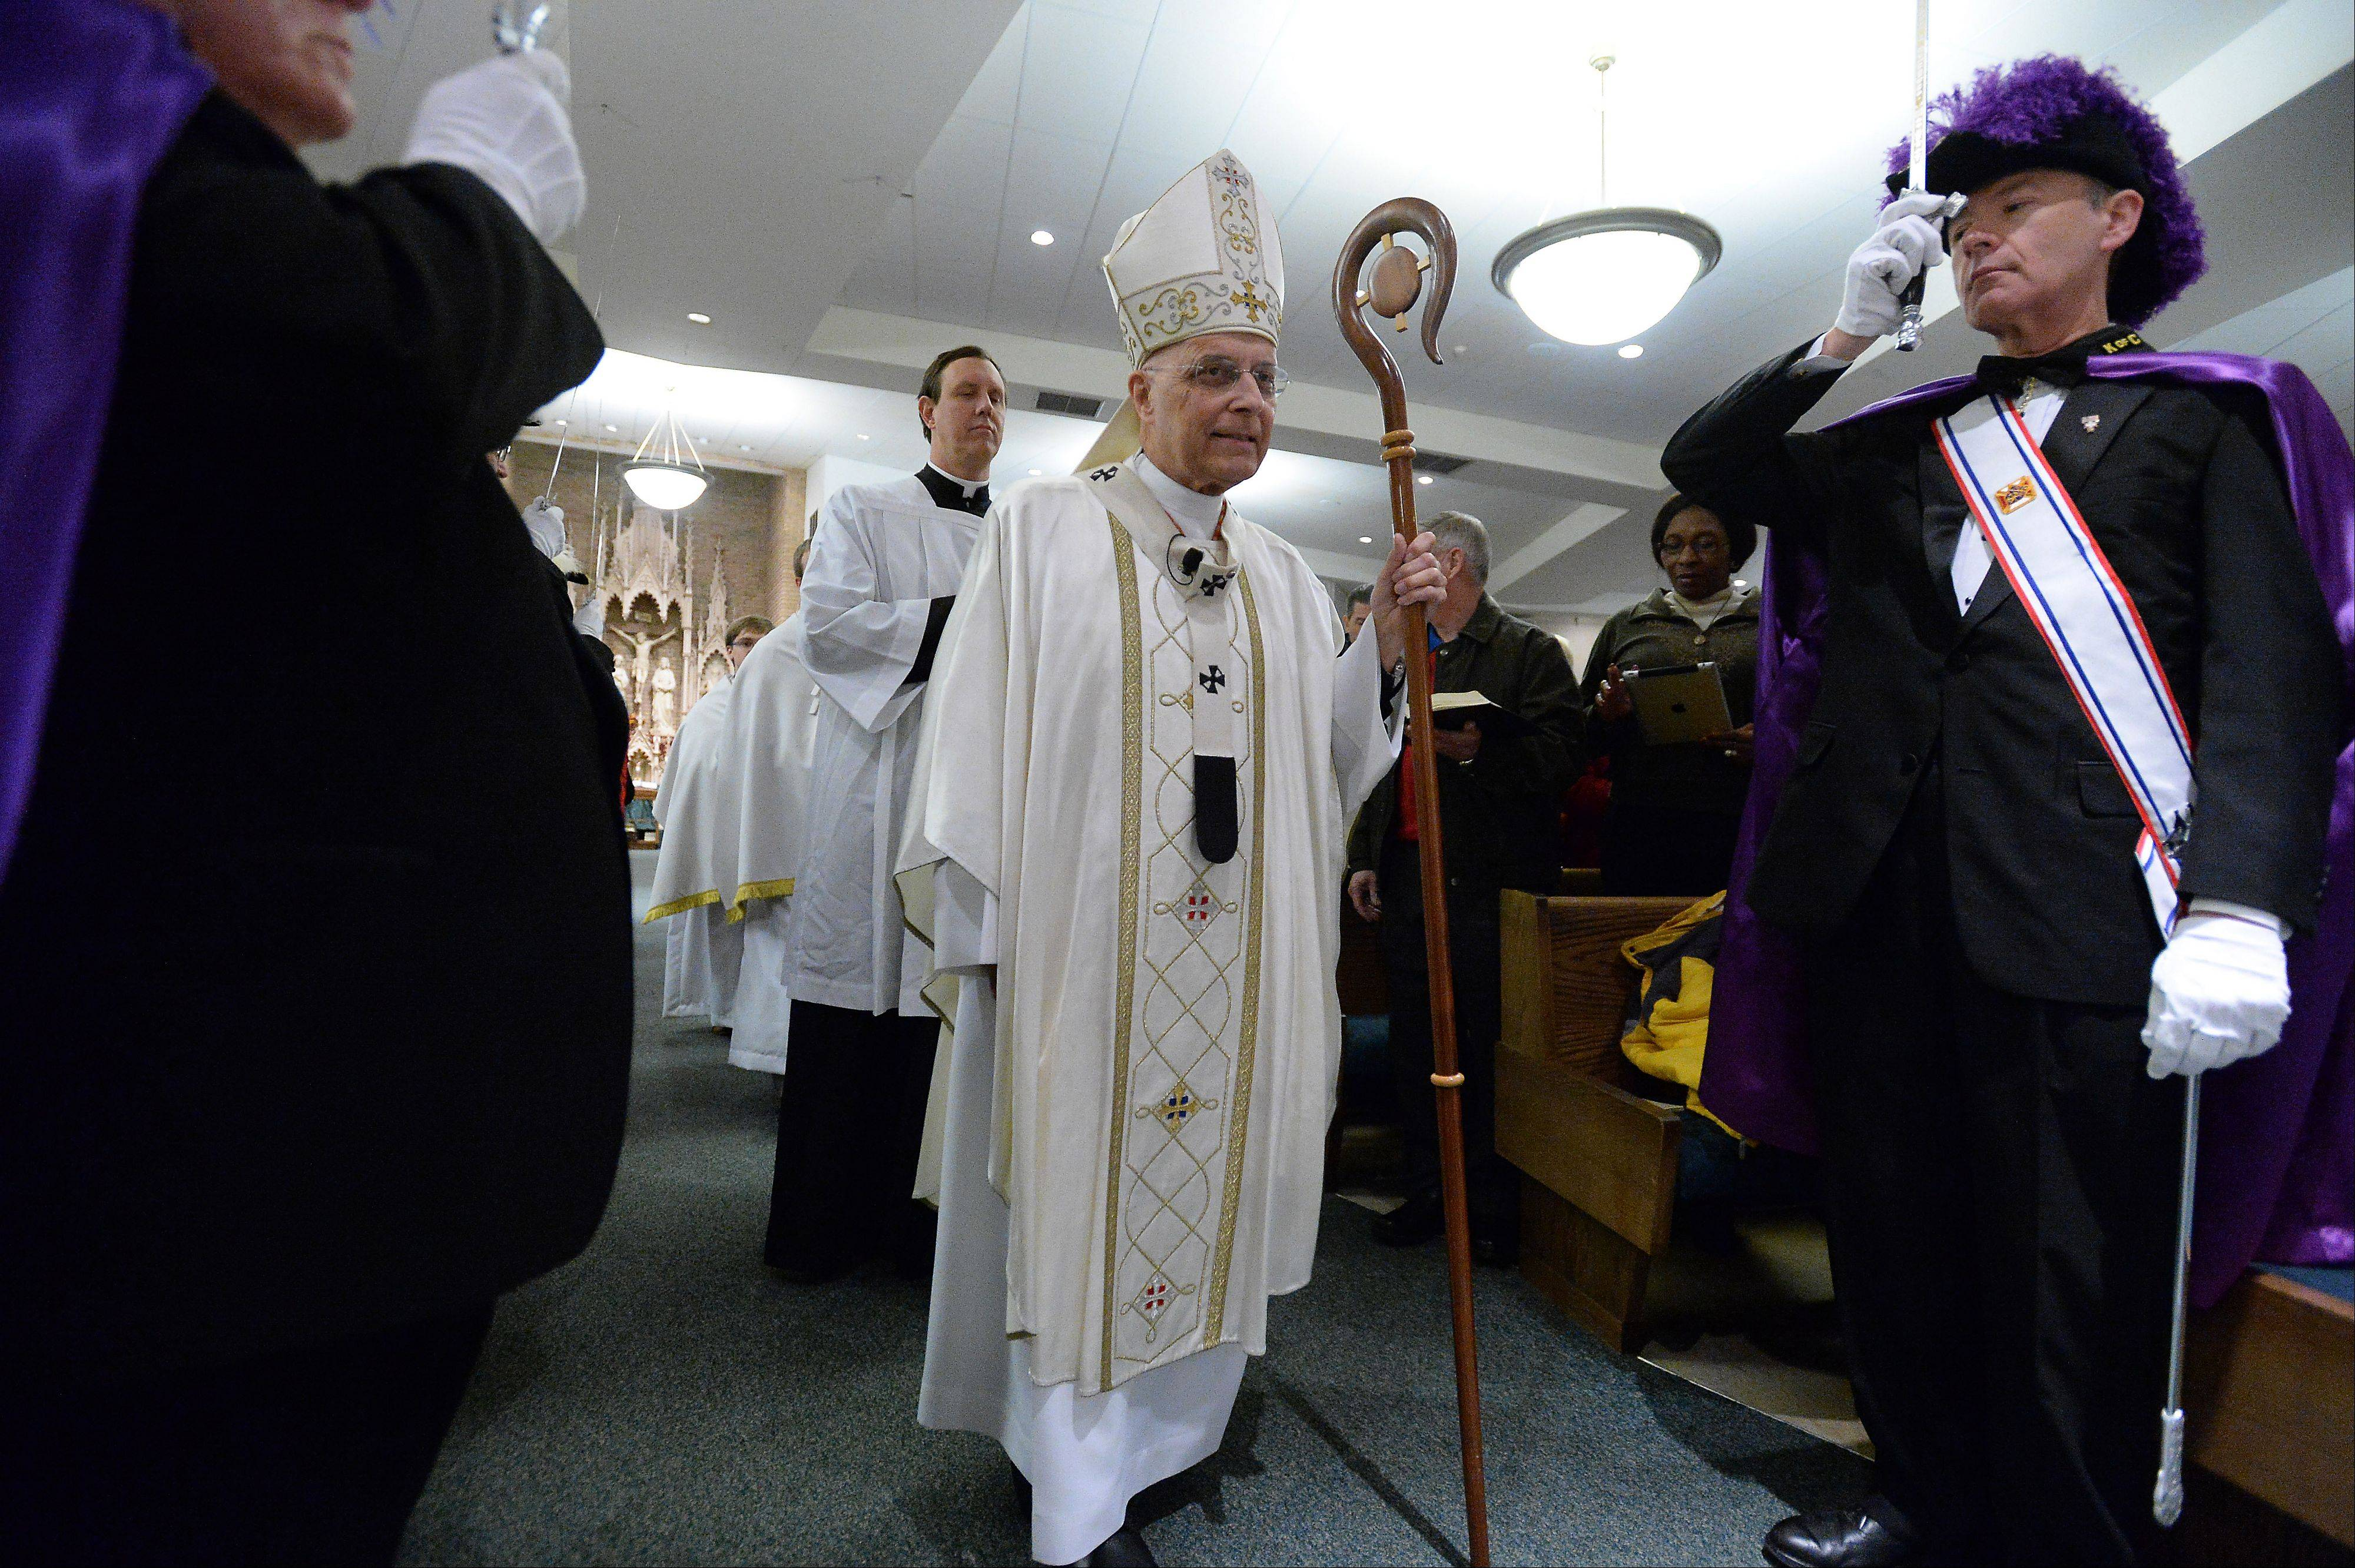 Cardinal George leads the procession into St. Mary�s Church with the Knights of Columbus to celebrate Mass Saturday as part of �Day of Catholic Education� in Buffalo Grove.